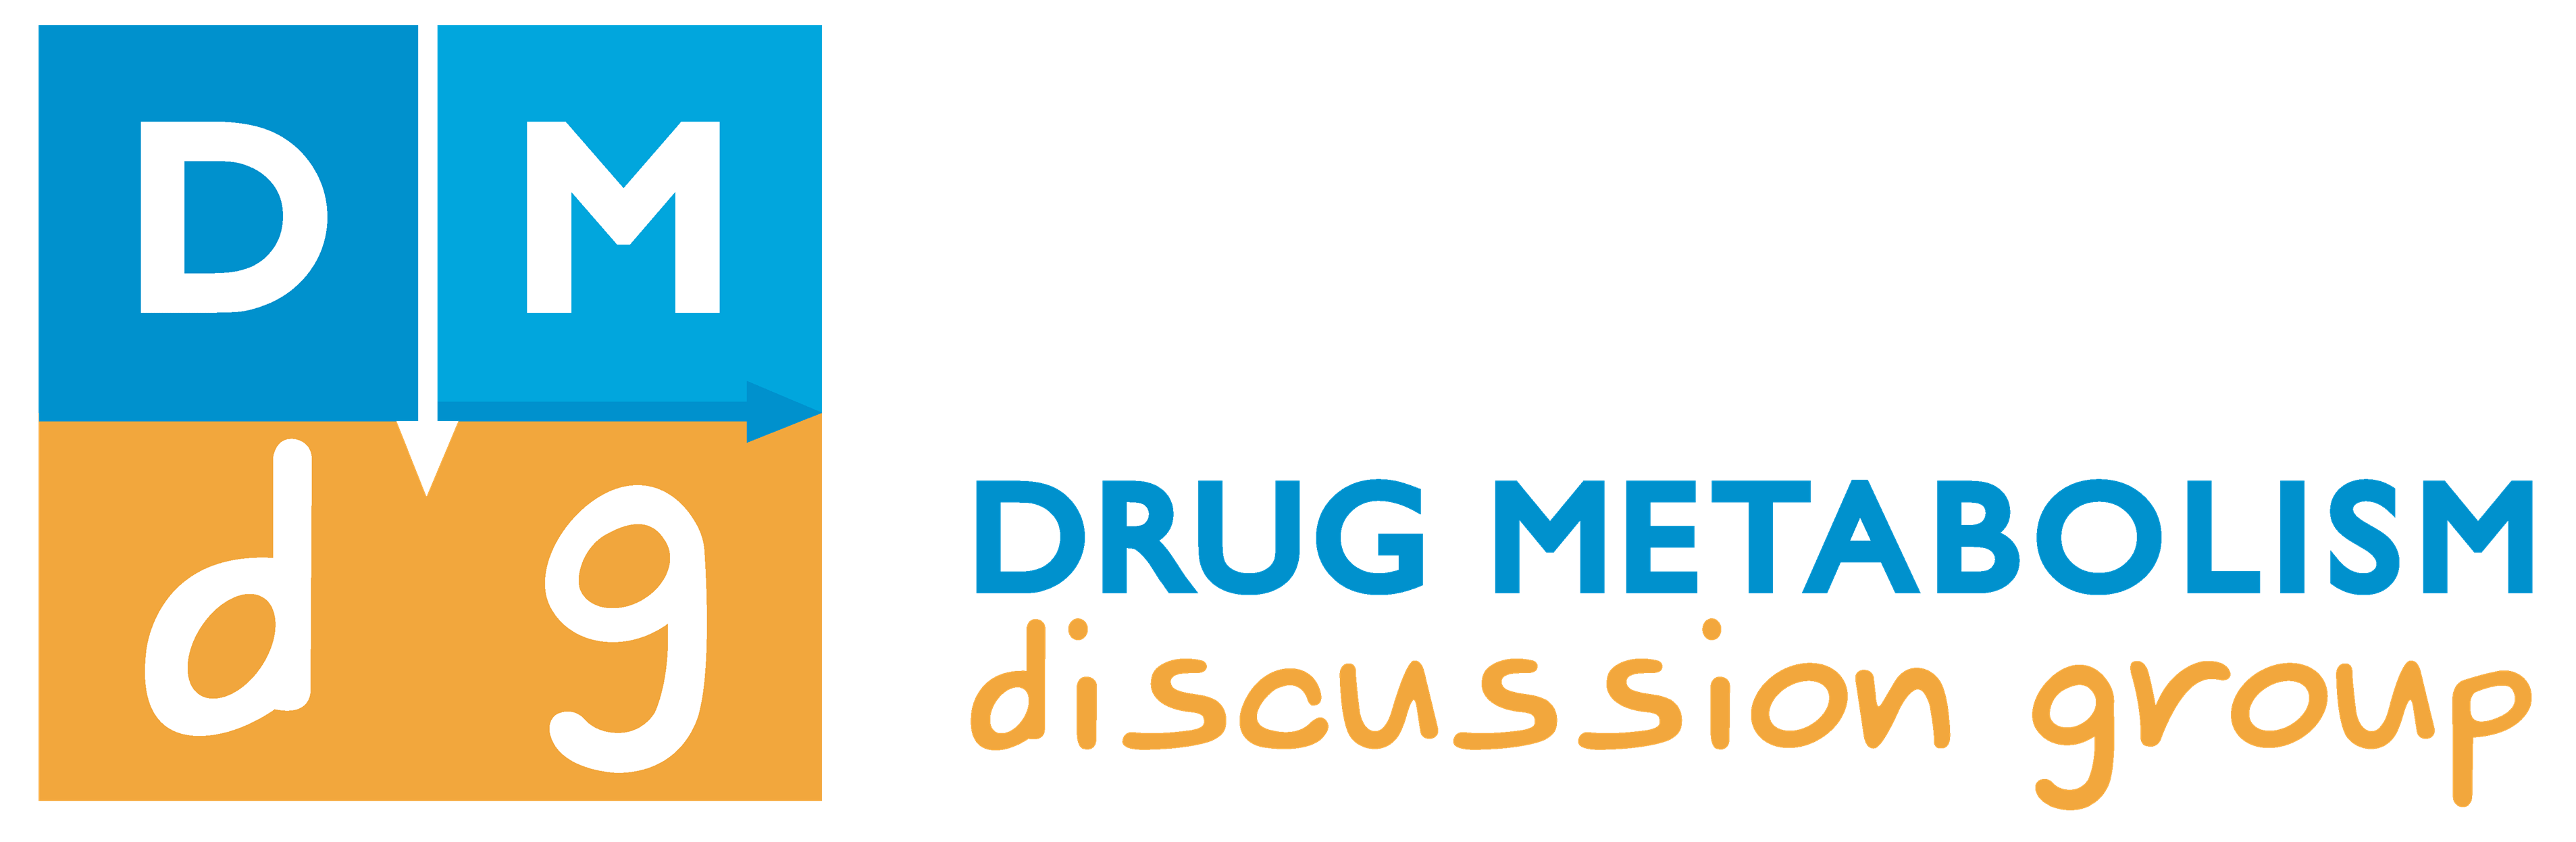 Drug Metabolism Discussion Group